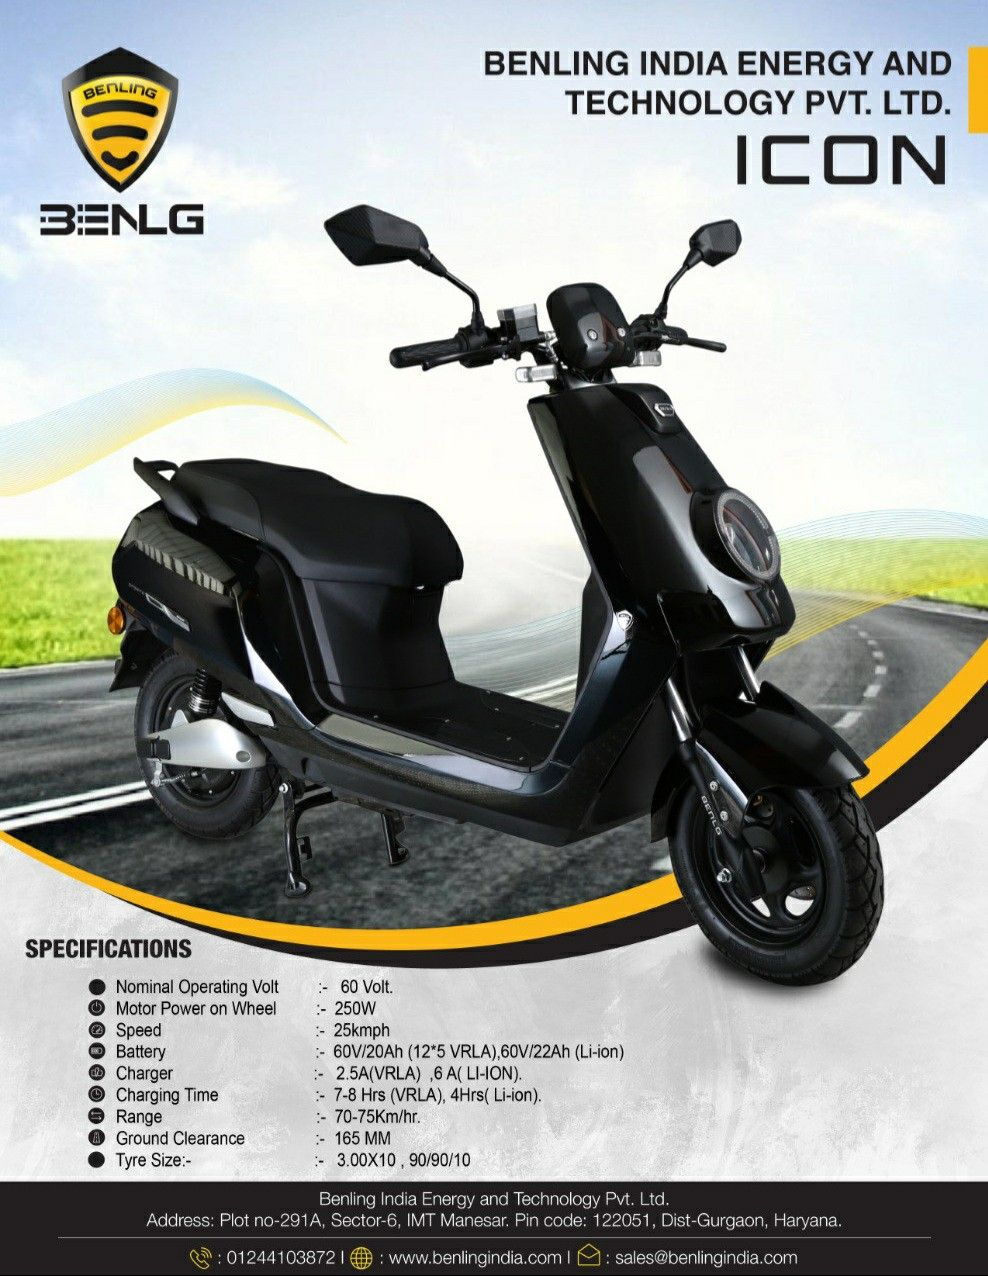 The weather changes, constantly occurring natural disaster and heavy drought in various regions proves that gas produced by crude oil is worsening our climate. To better these effects we need to change the way we commute. Benling India offers a wide range of e-scooters to get you through your daily life commute and also helping to keep our future clean green & healthy #nopollution #letsgreenit #gogreen